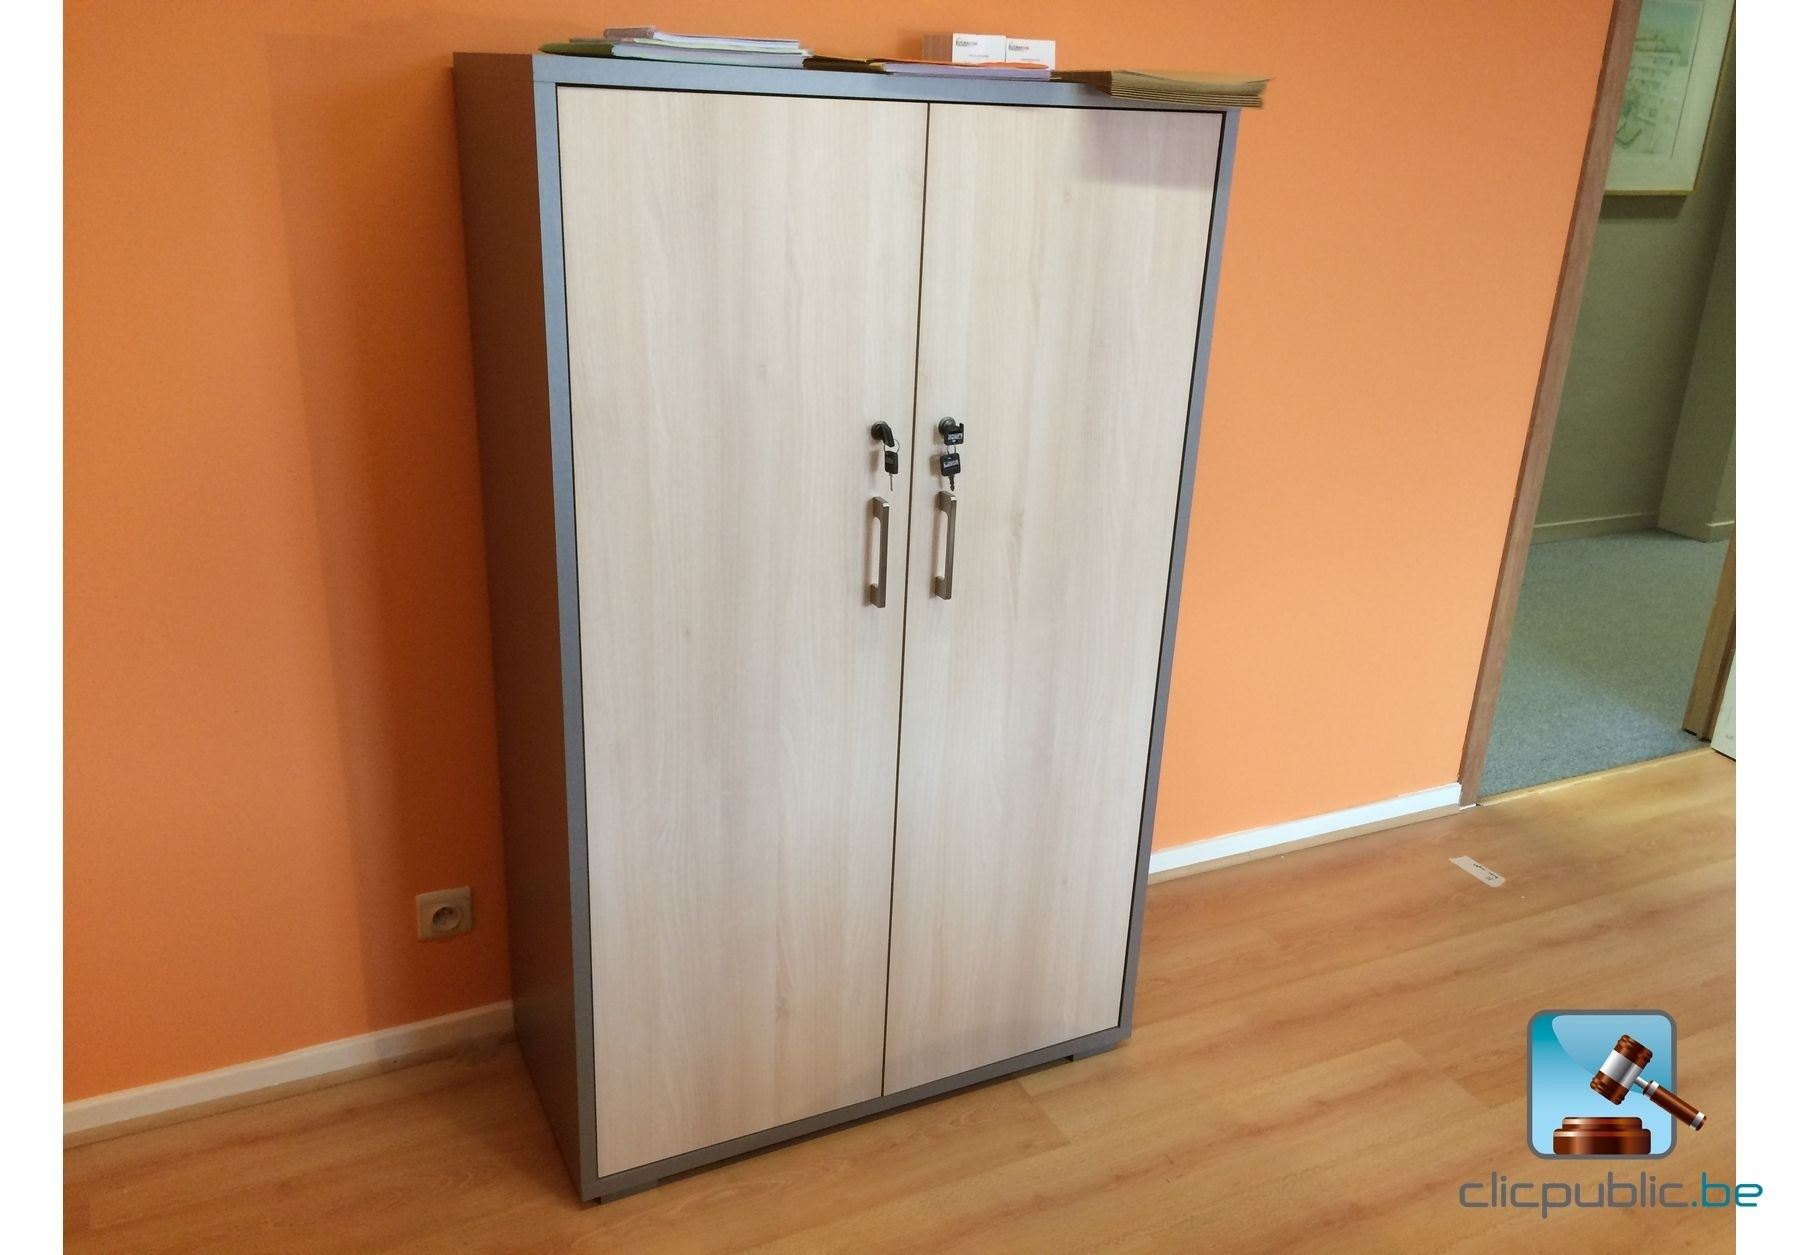 Office Furniture Ref 5 For Sale On Clicpublicbe